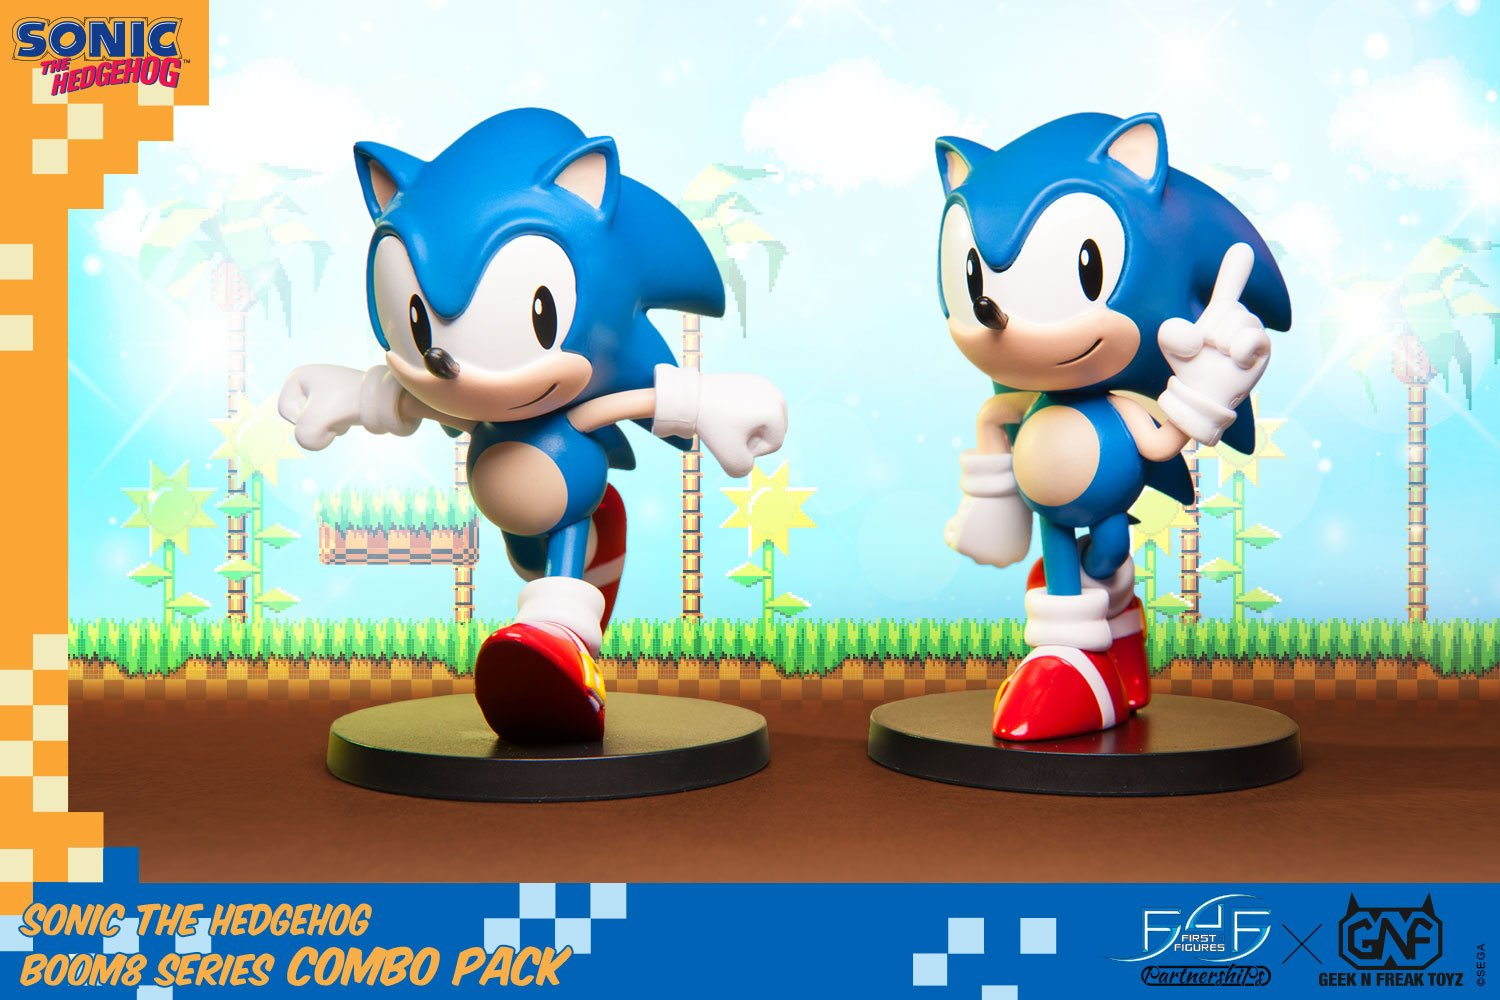 What's that, @First4Figures? New Sonic PVC figures?   Just go ahead and take our money. https://t.co/Cht4FmRVRN https://t.co/PWYLAdp821